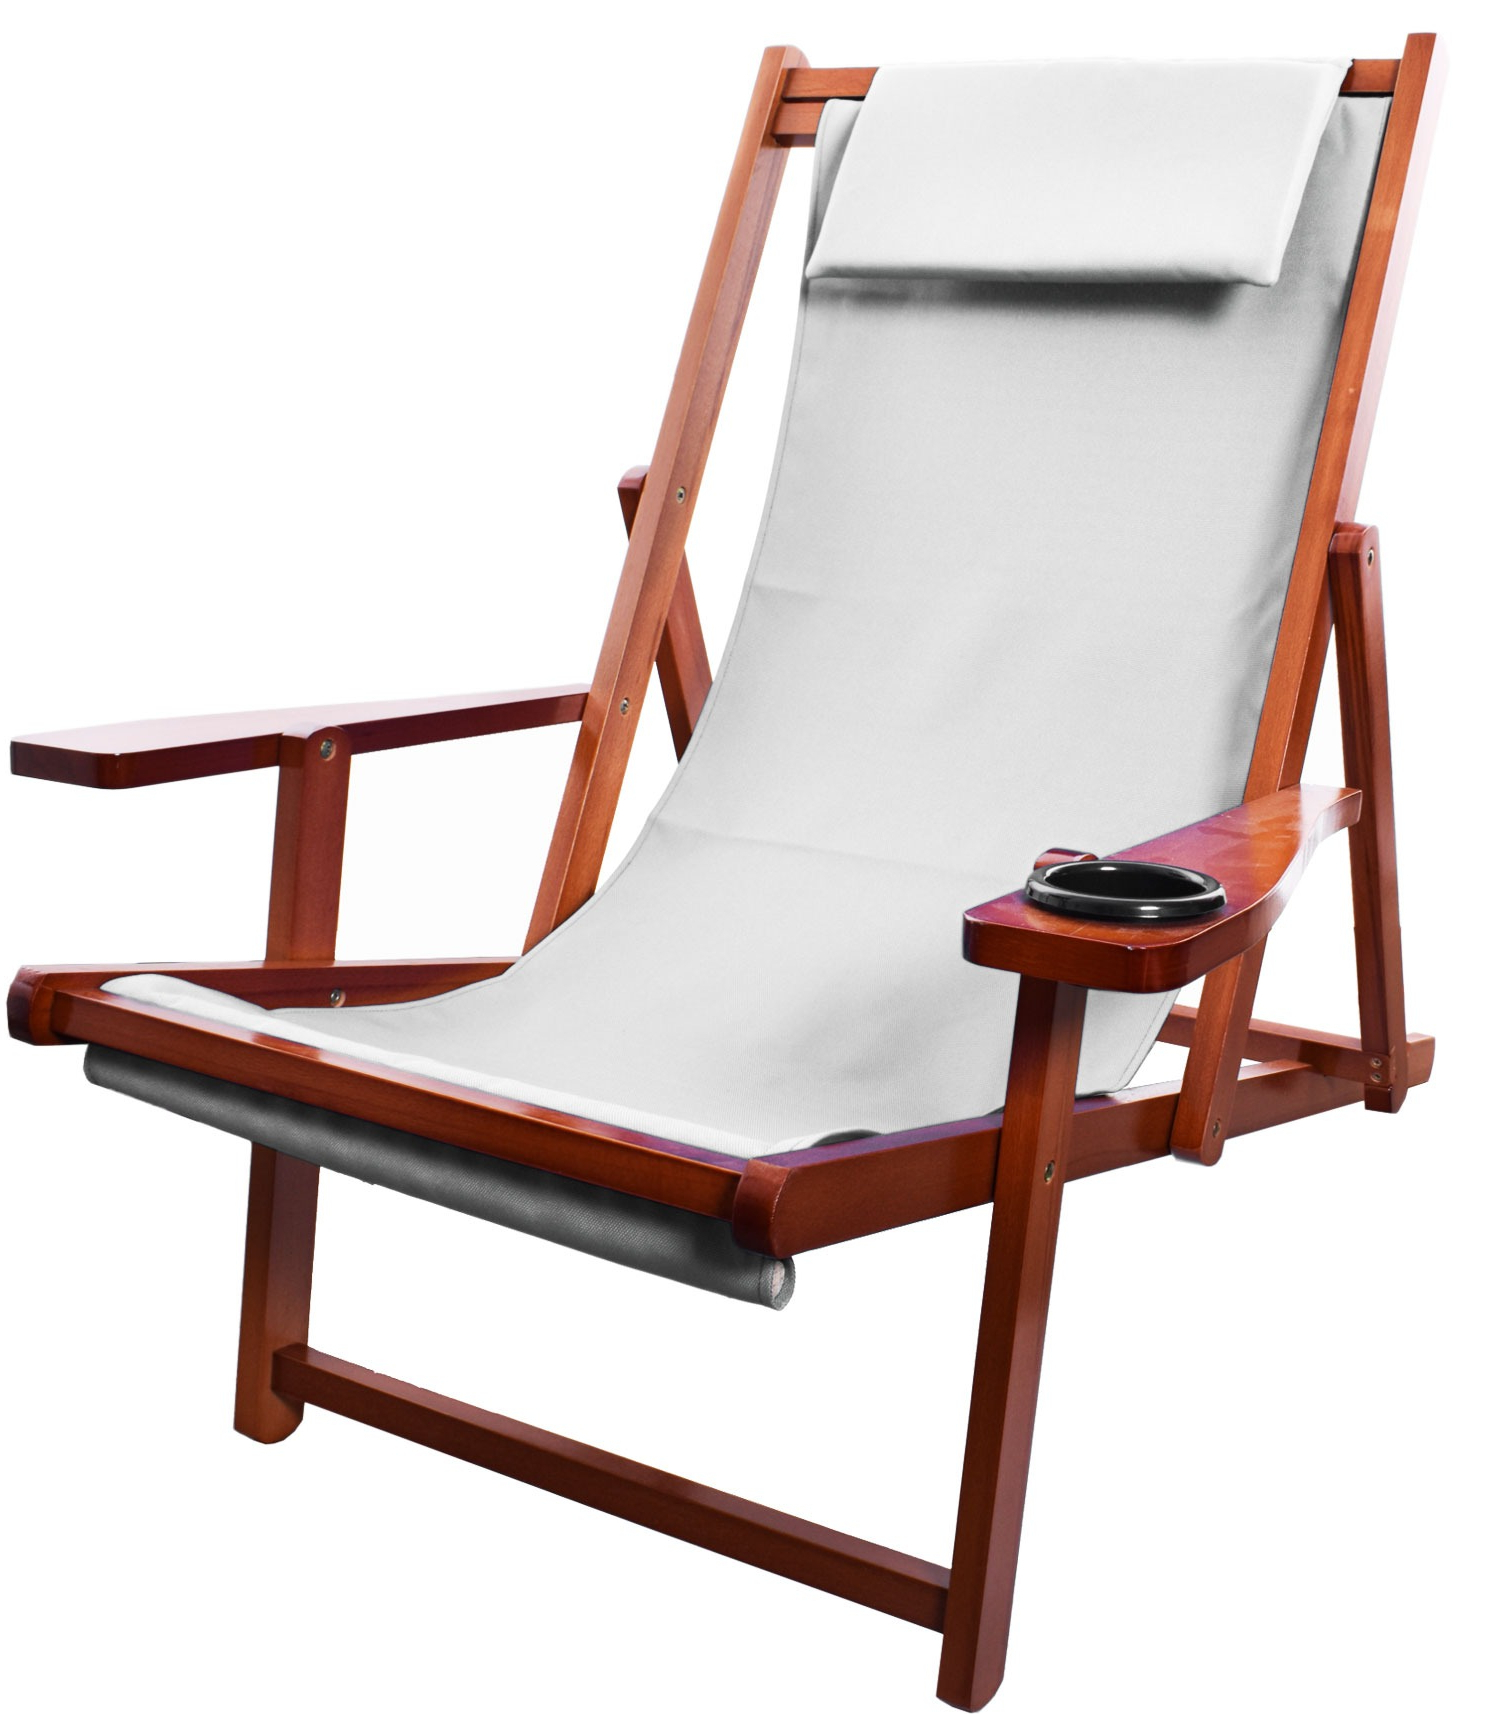 Outdoor Wood Sling Chairs Regarding Most Current Style# 01Sling – Wood Sling Chair – Peerless Umbrella (View 15 of 25)